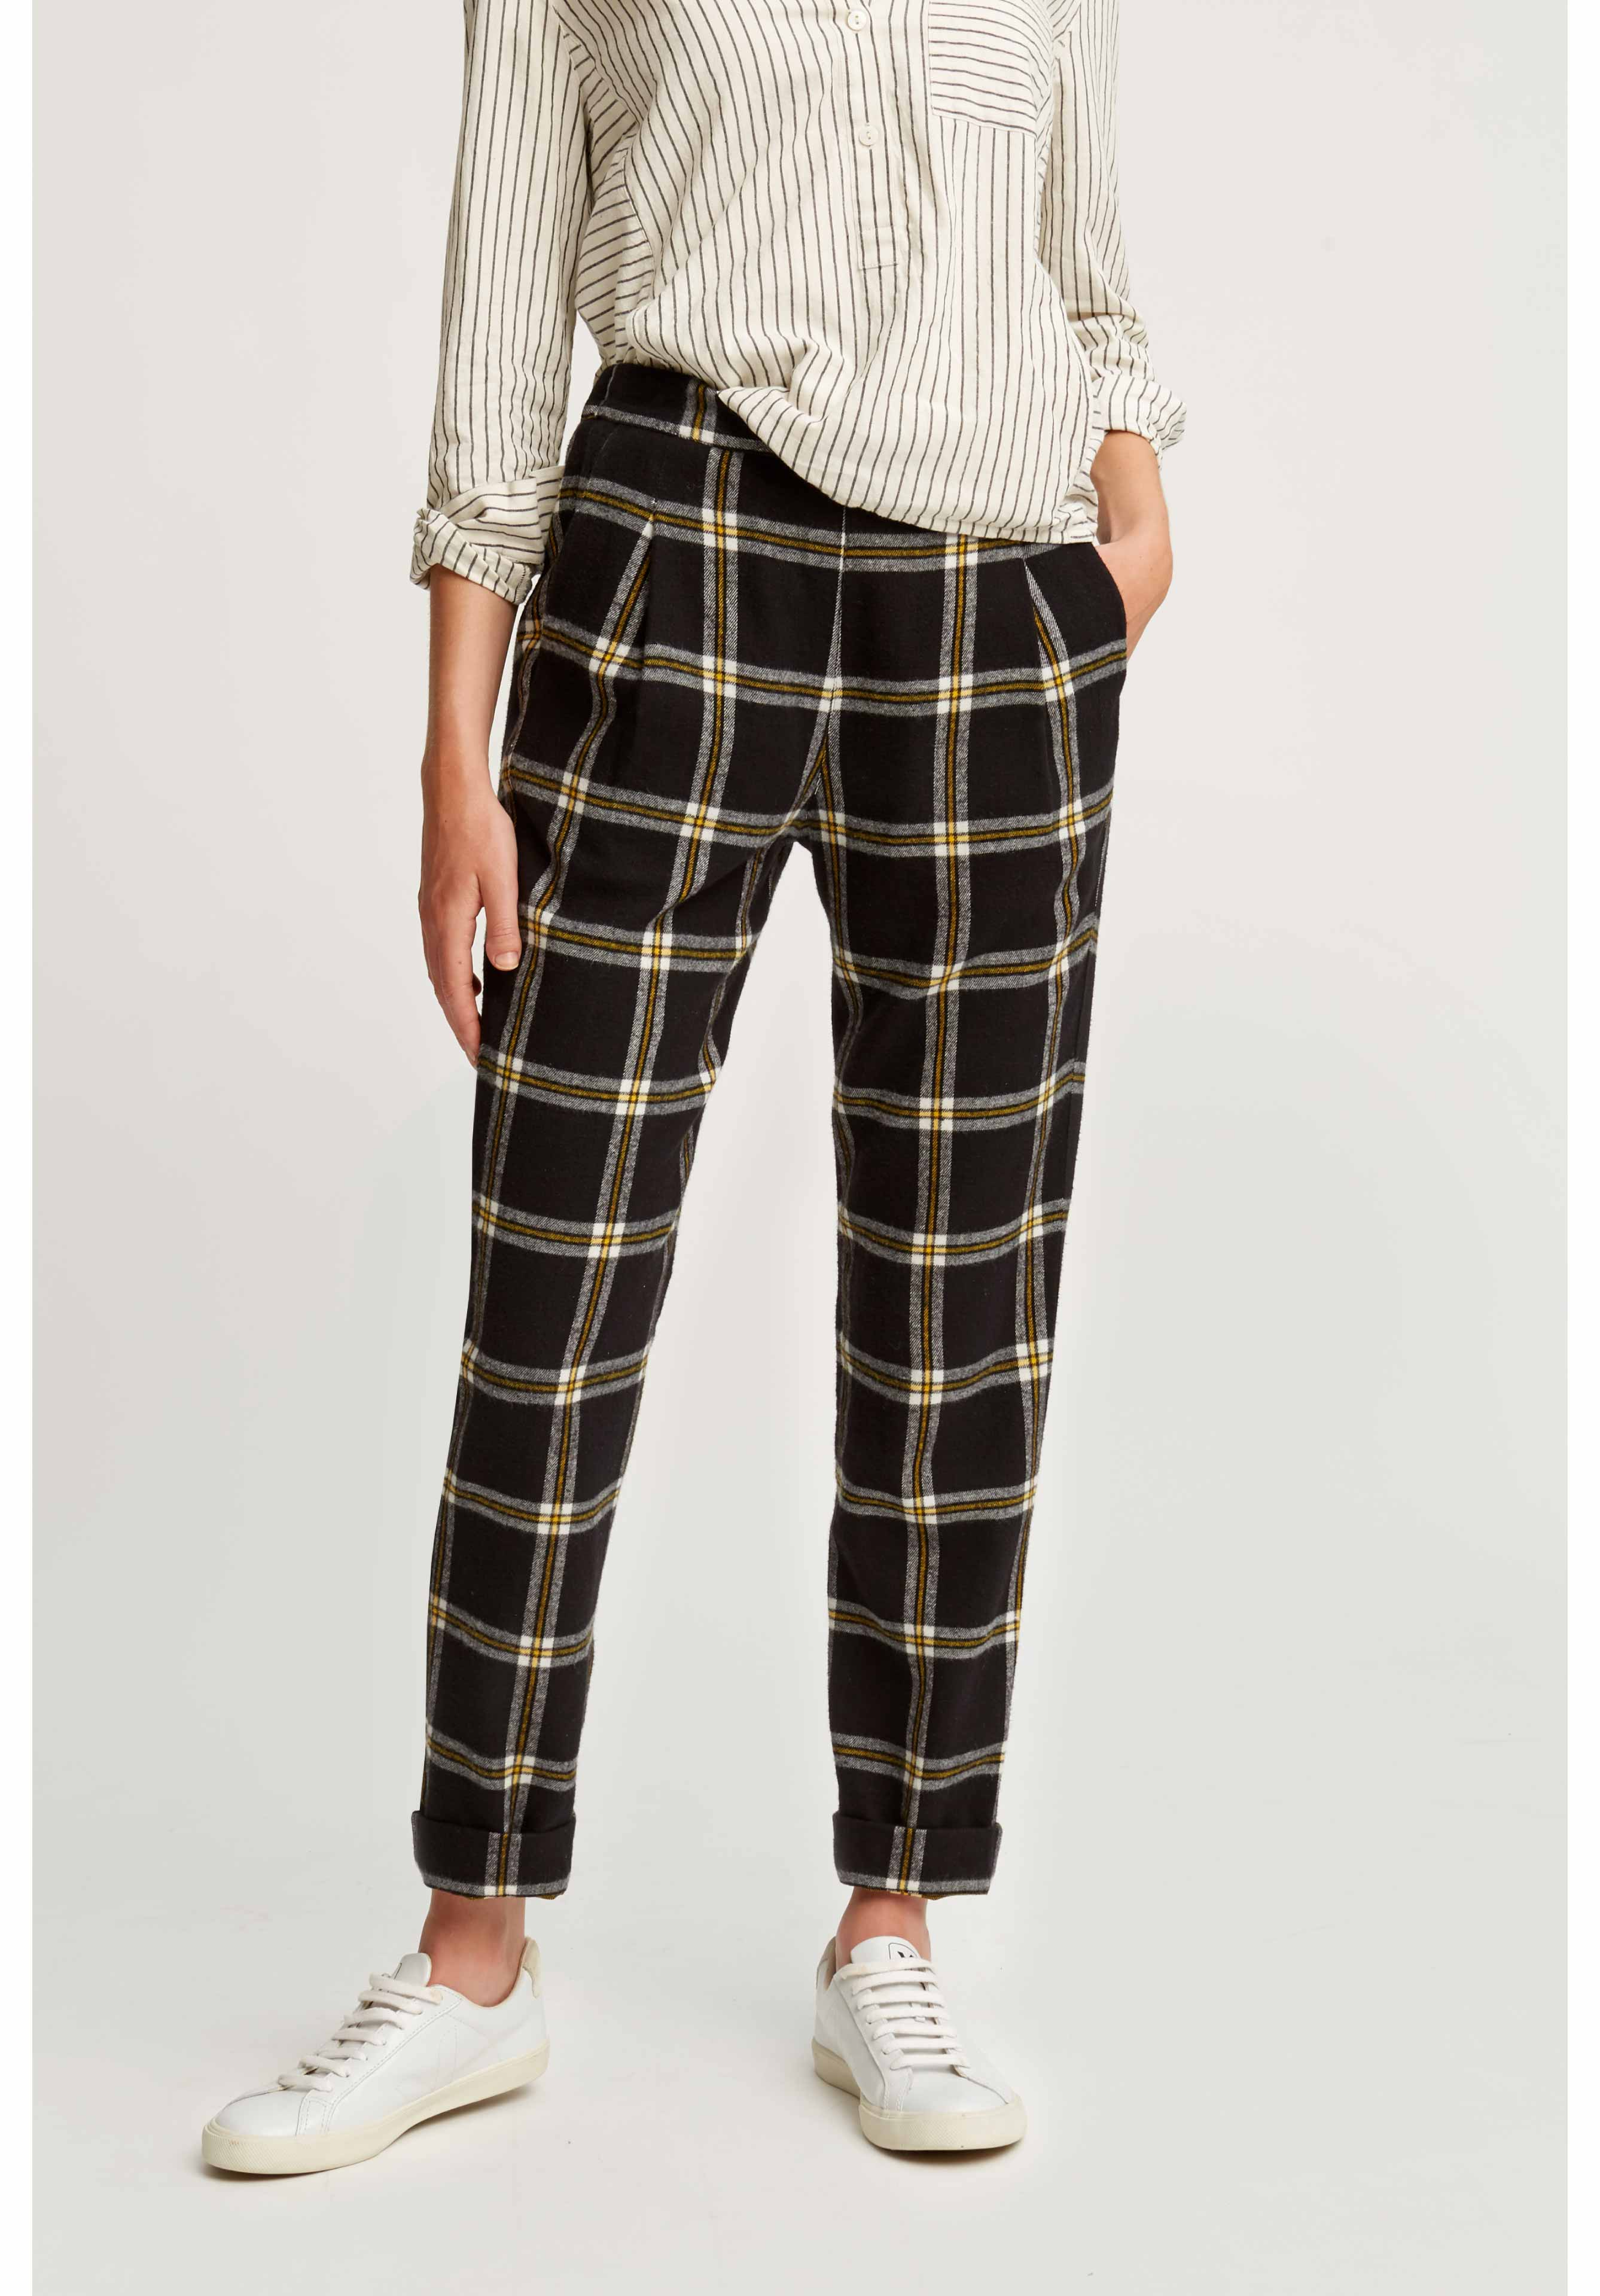 Find great deals on eBay for checkered trousers. Shop with confidence.